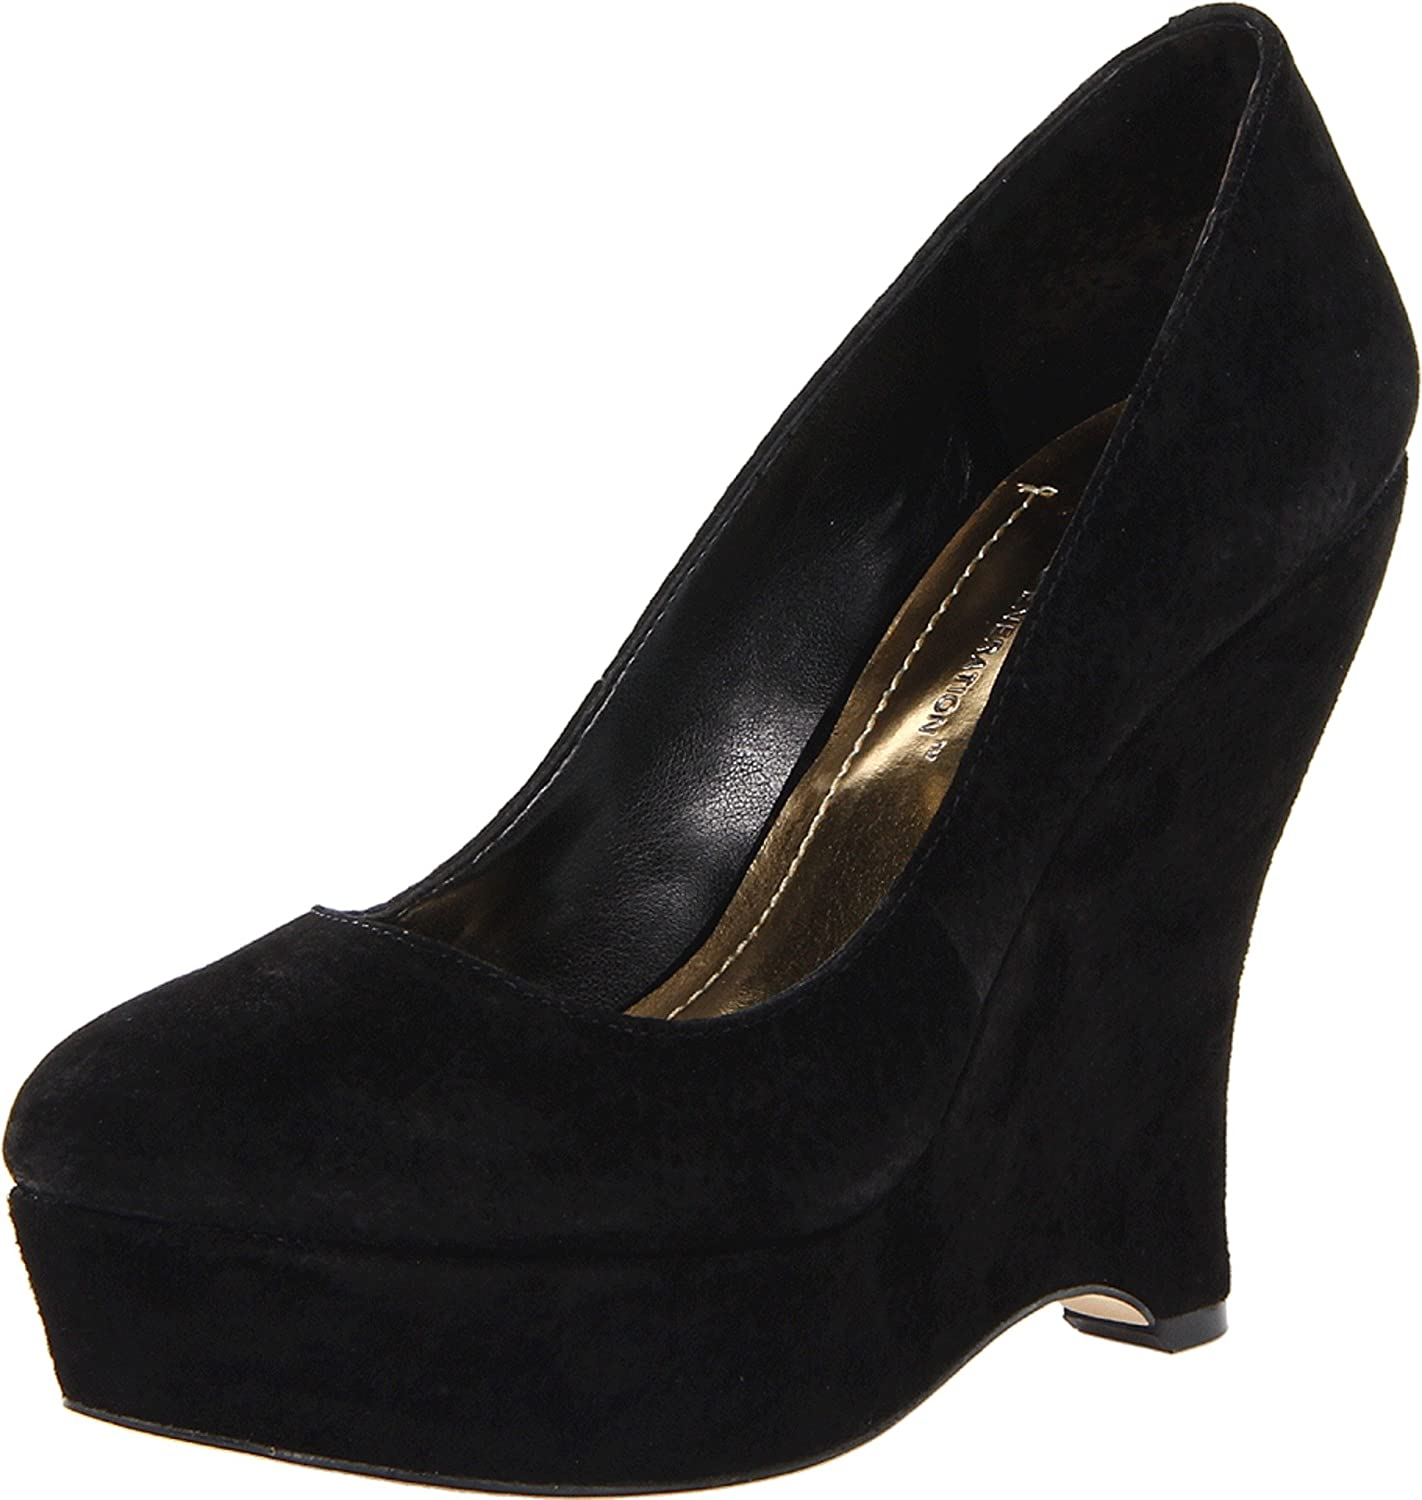 BCBGeneration Women's Carleen Wedge Pump B00CC9V4GQ 10 B(M) US|Black